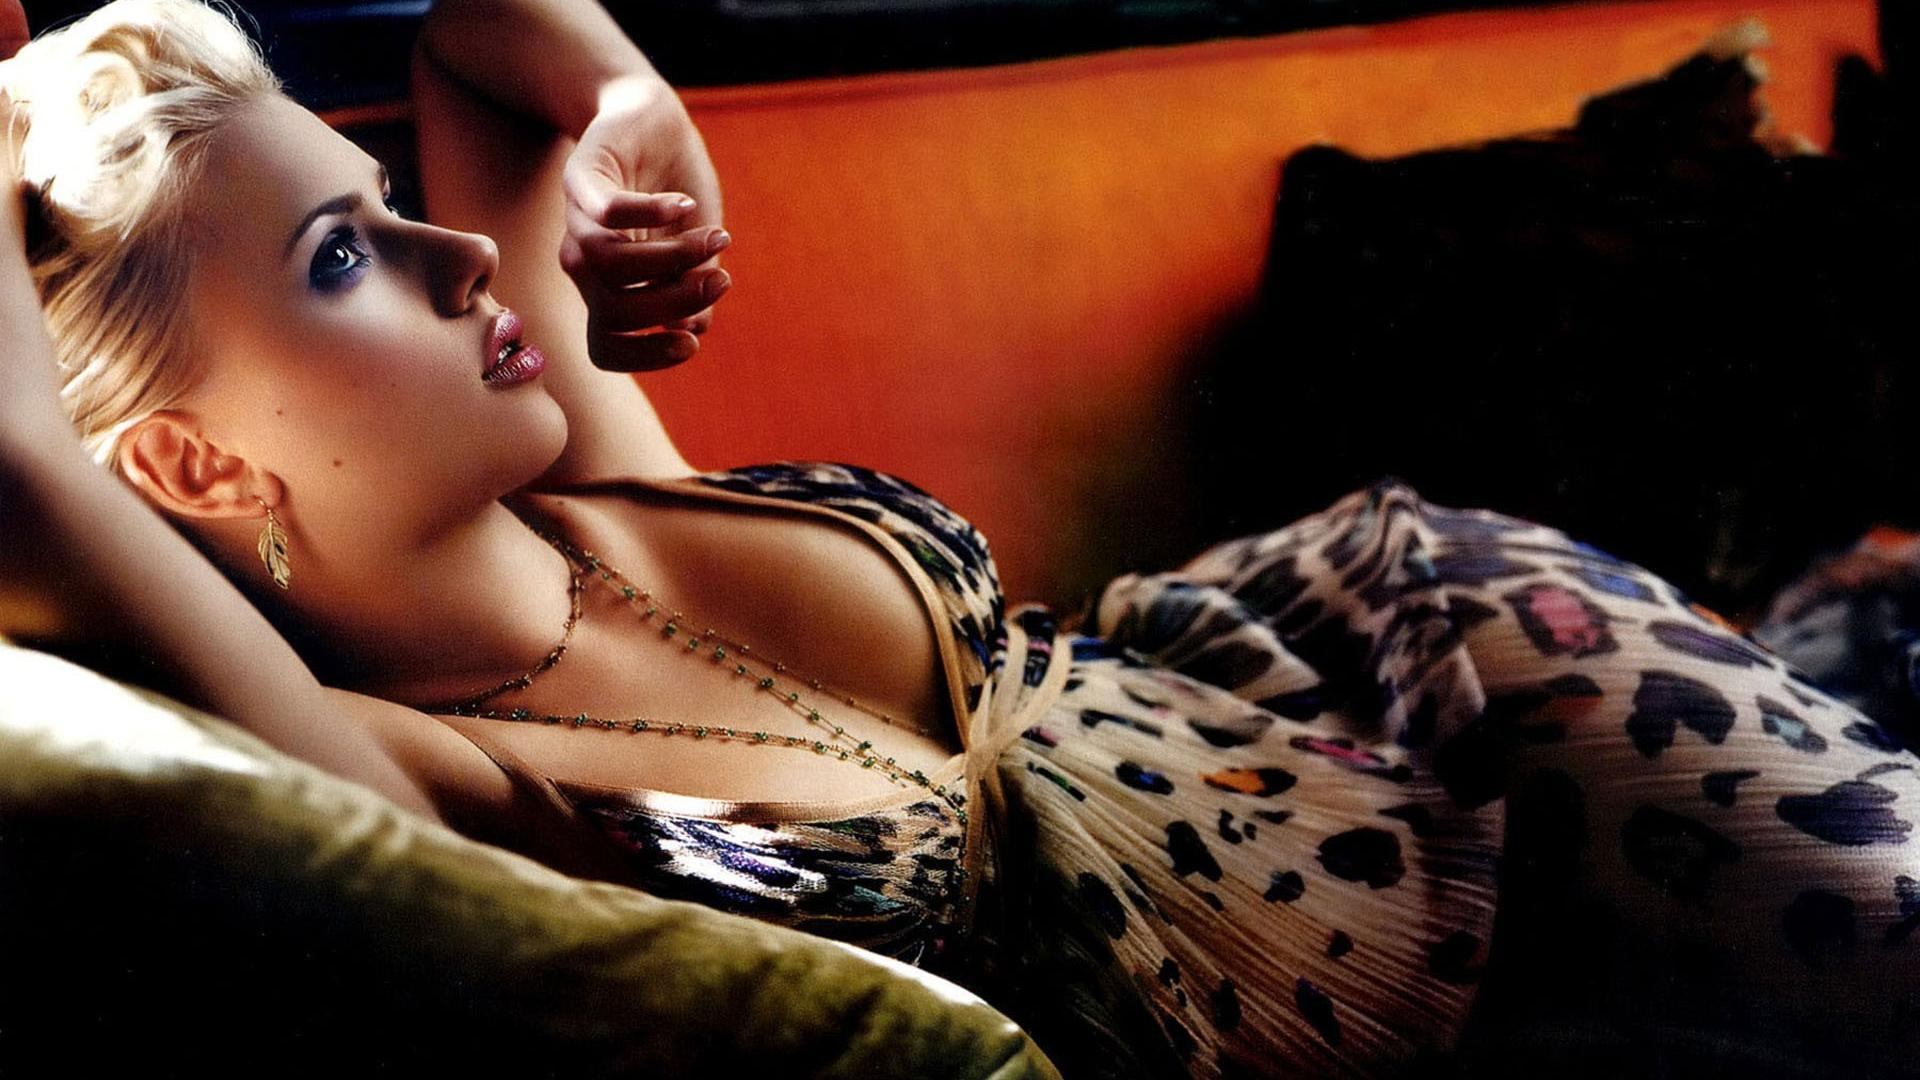 Scarlett Johansson Awesome Pics